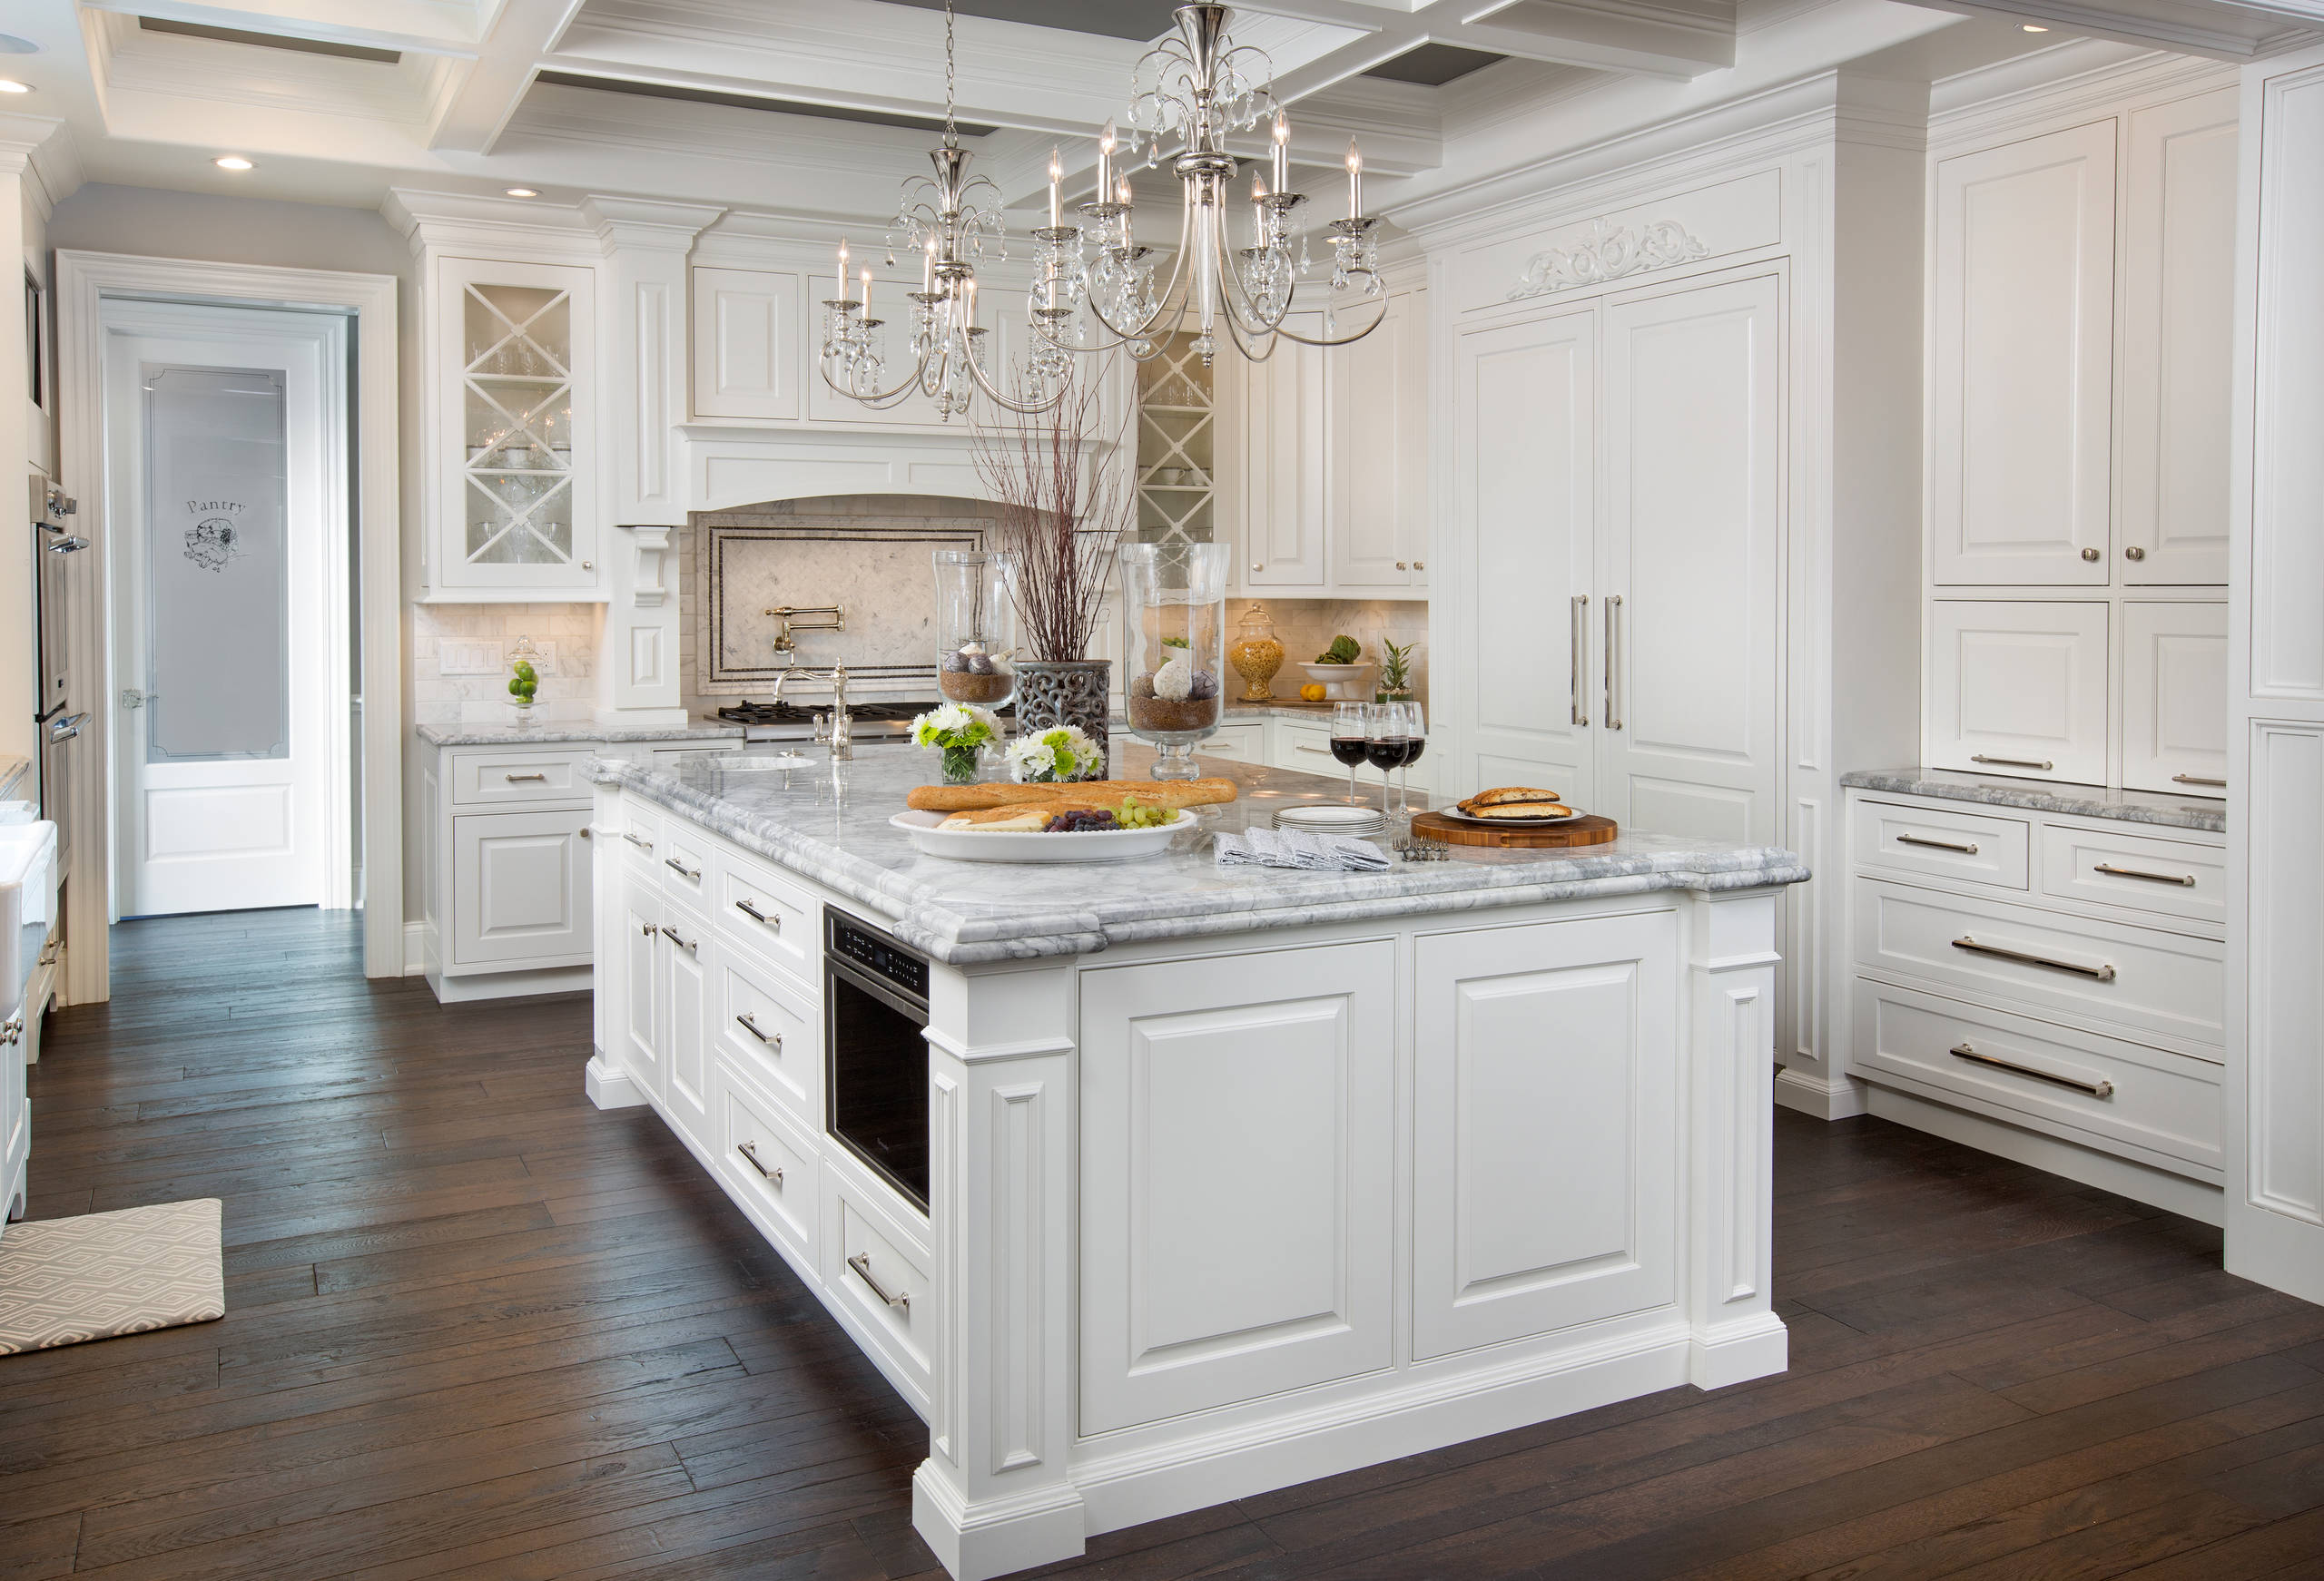 7 Steps To Decorating Your Dream Kitchen Make Sure Our Must